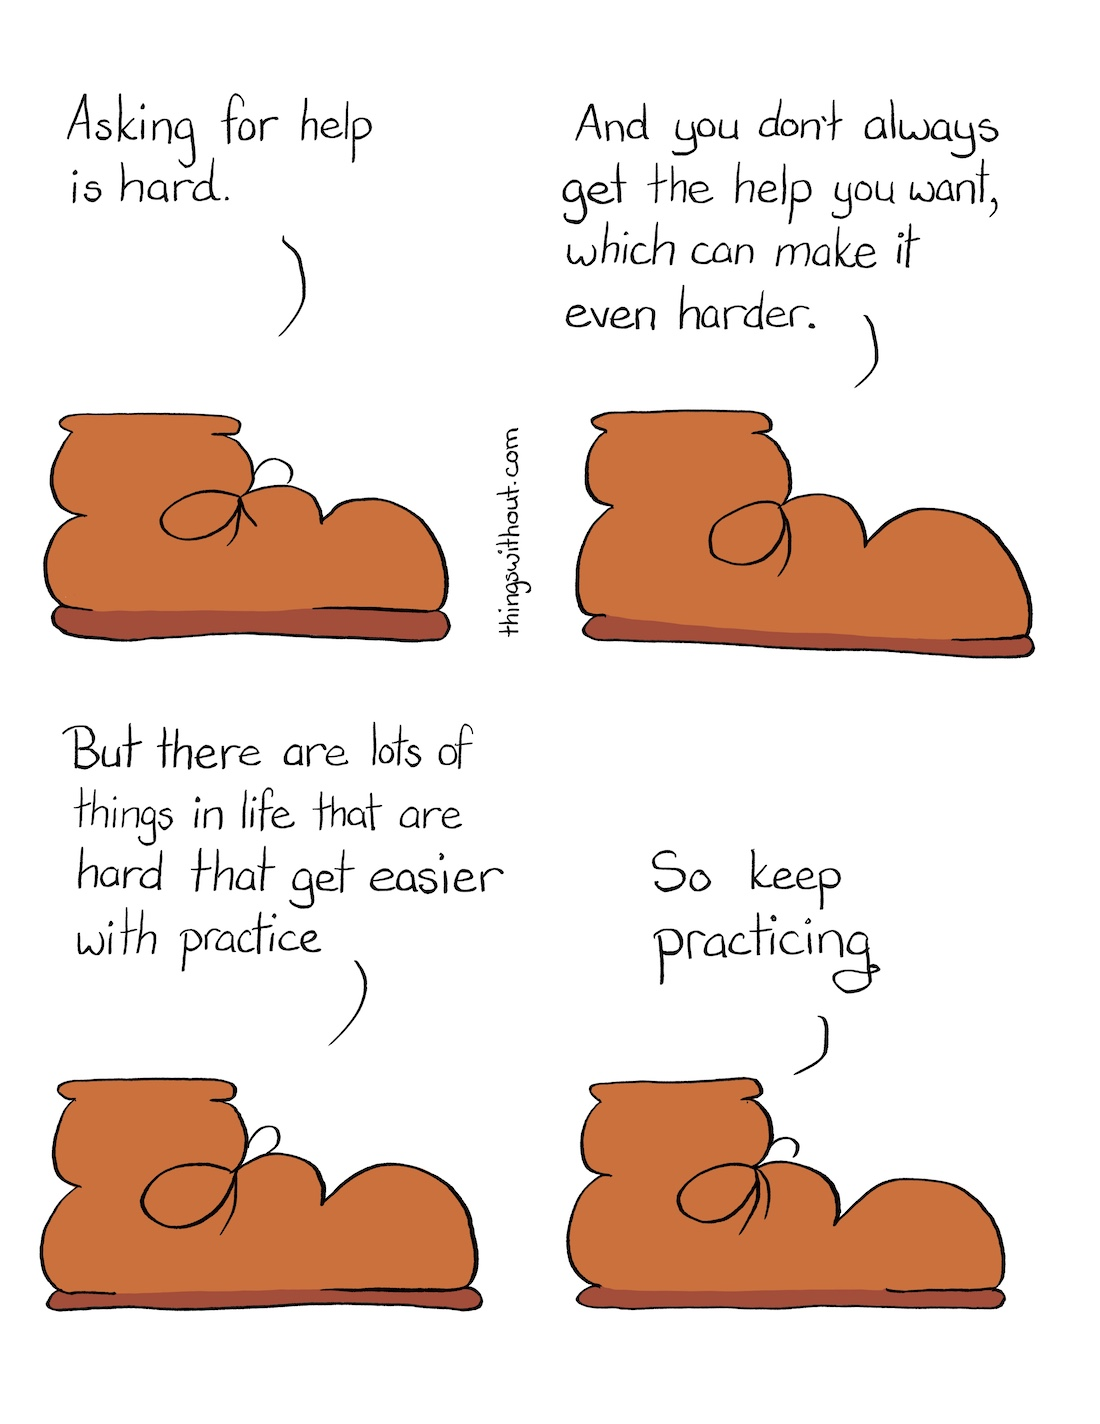 Asking for Help Comic Transcript A warm brown work boot is talking to us. Boot: Asking for help is hard. Boot: And you don't always get the help you want, which can make it even harder. Boot: But there are lots of things in life that are hard the get easier with practice. Boot: So keep practicing.